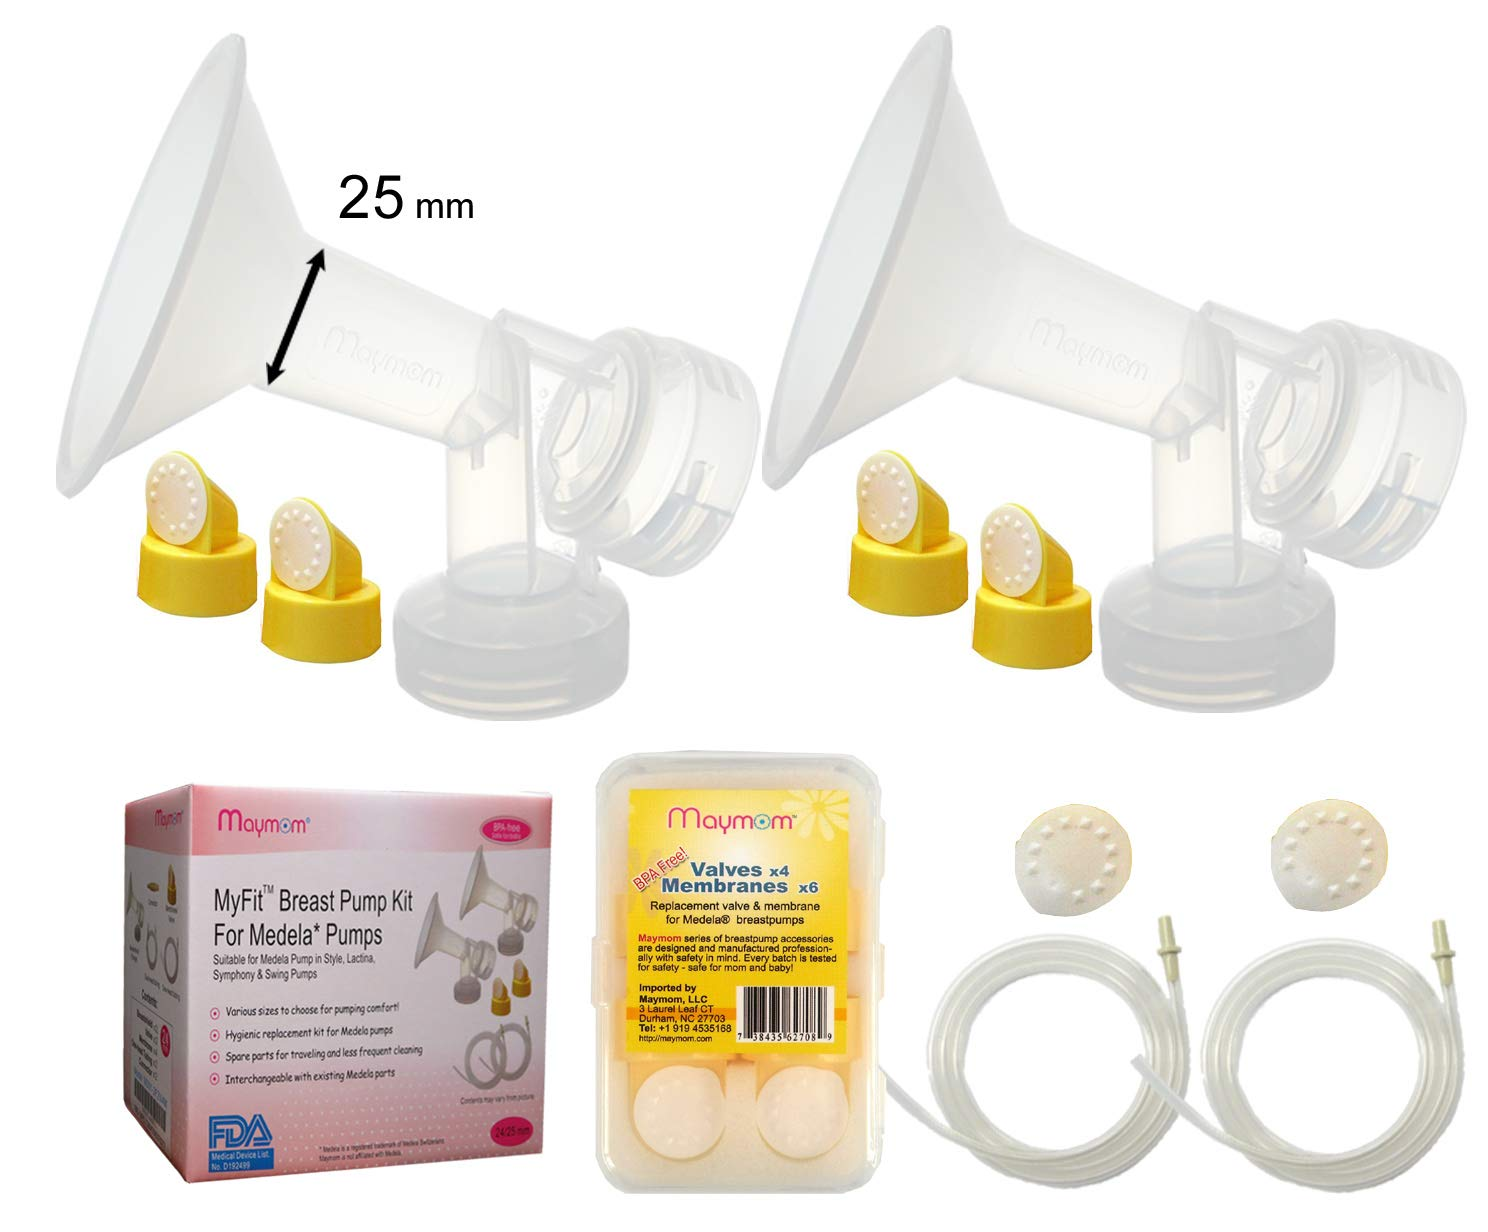 Maymom Pump Parts for Medela Pump in Style Advanced Pumps; w/Breastshields (24 mm, Can Replace Personal Fit 24 Shield and Connector), Valves, Membranes, Replacement Tubing for Pump-in-Style Advanced May-9190